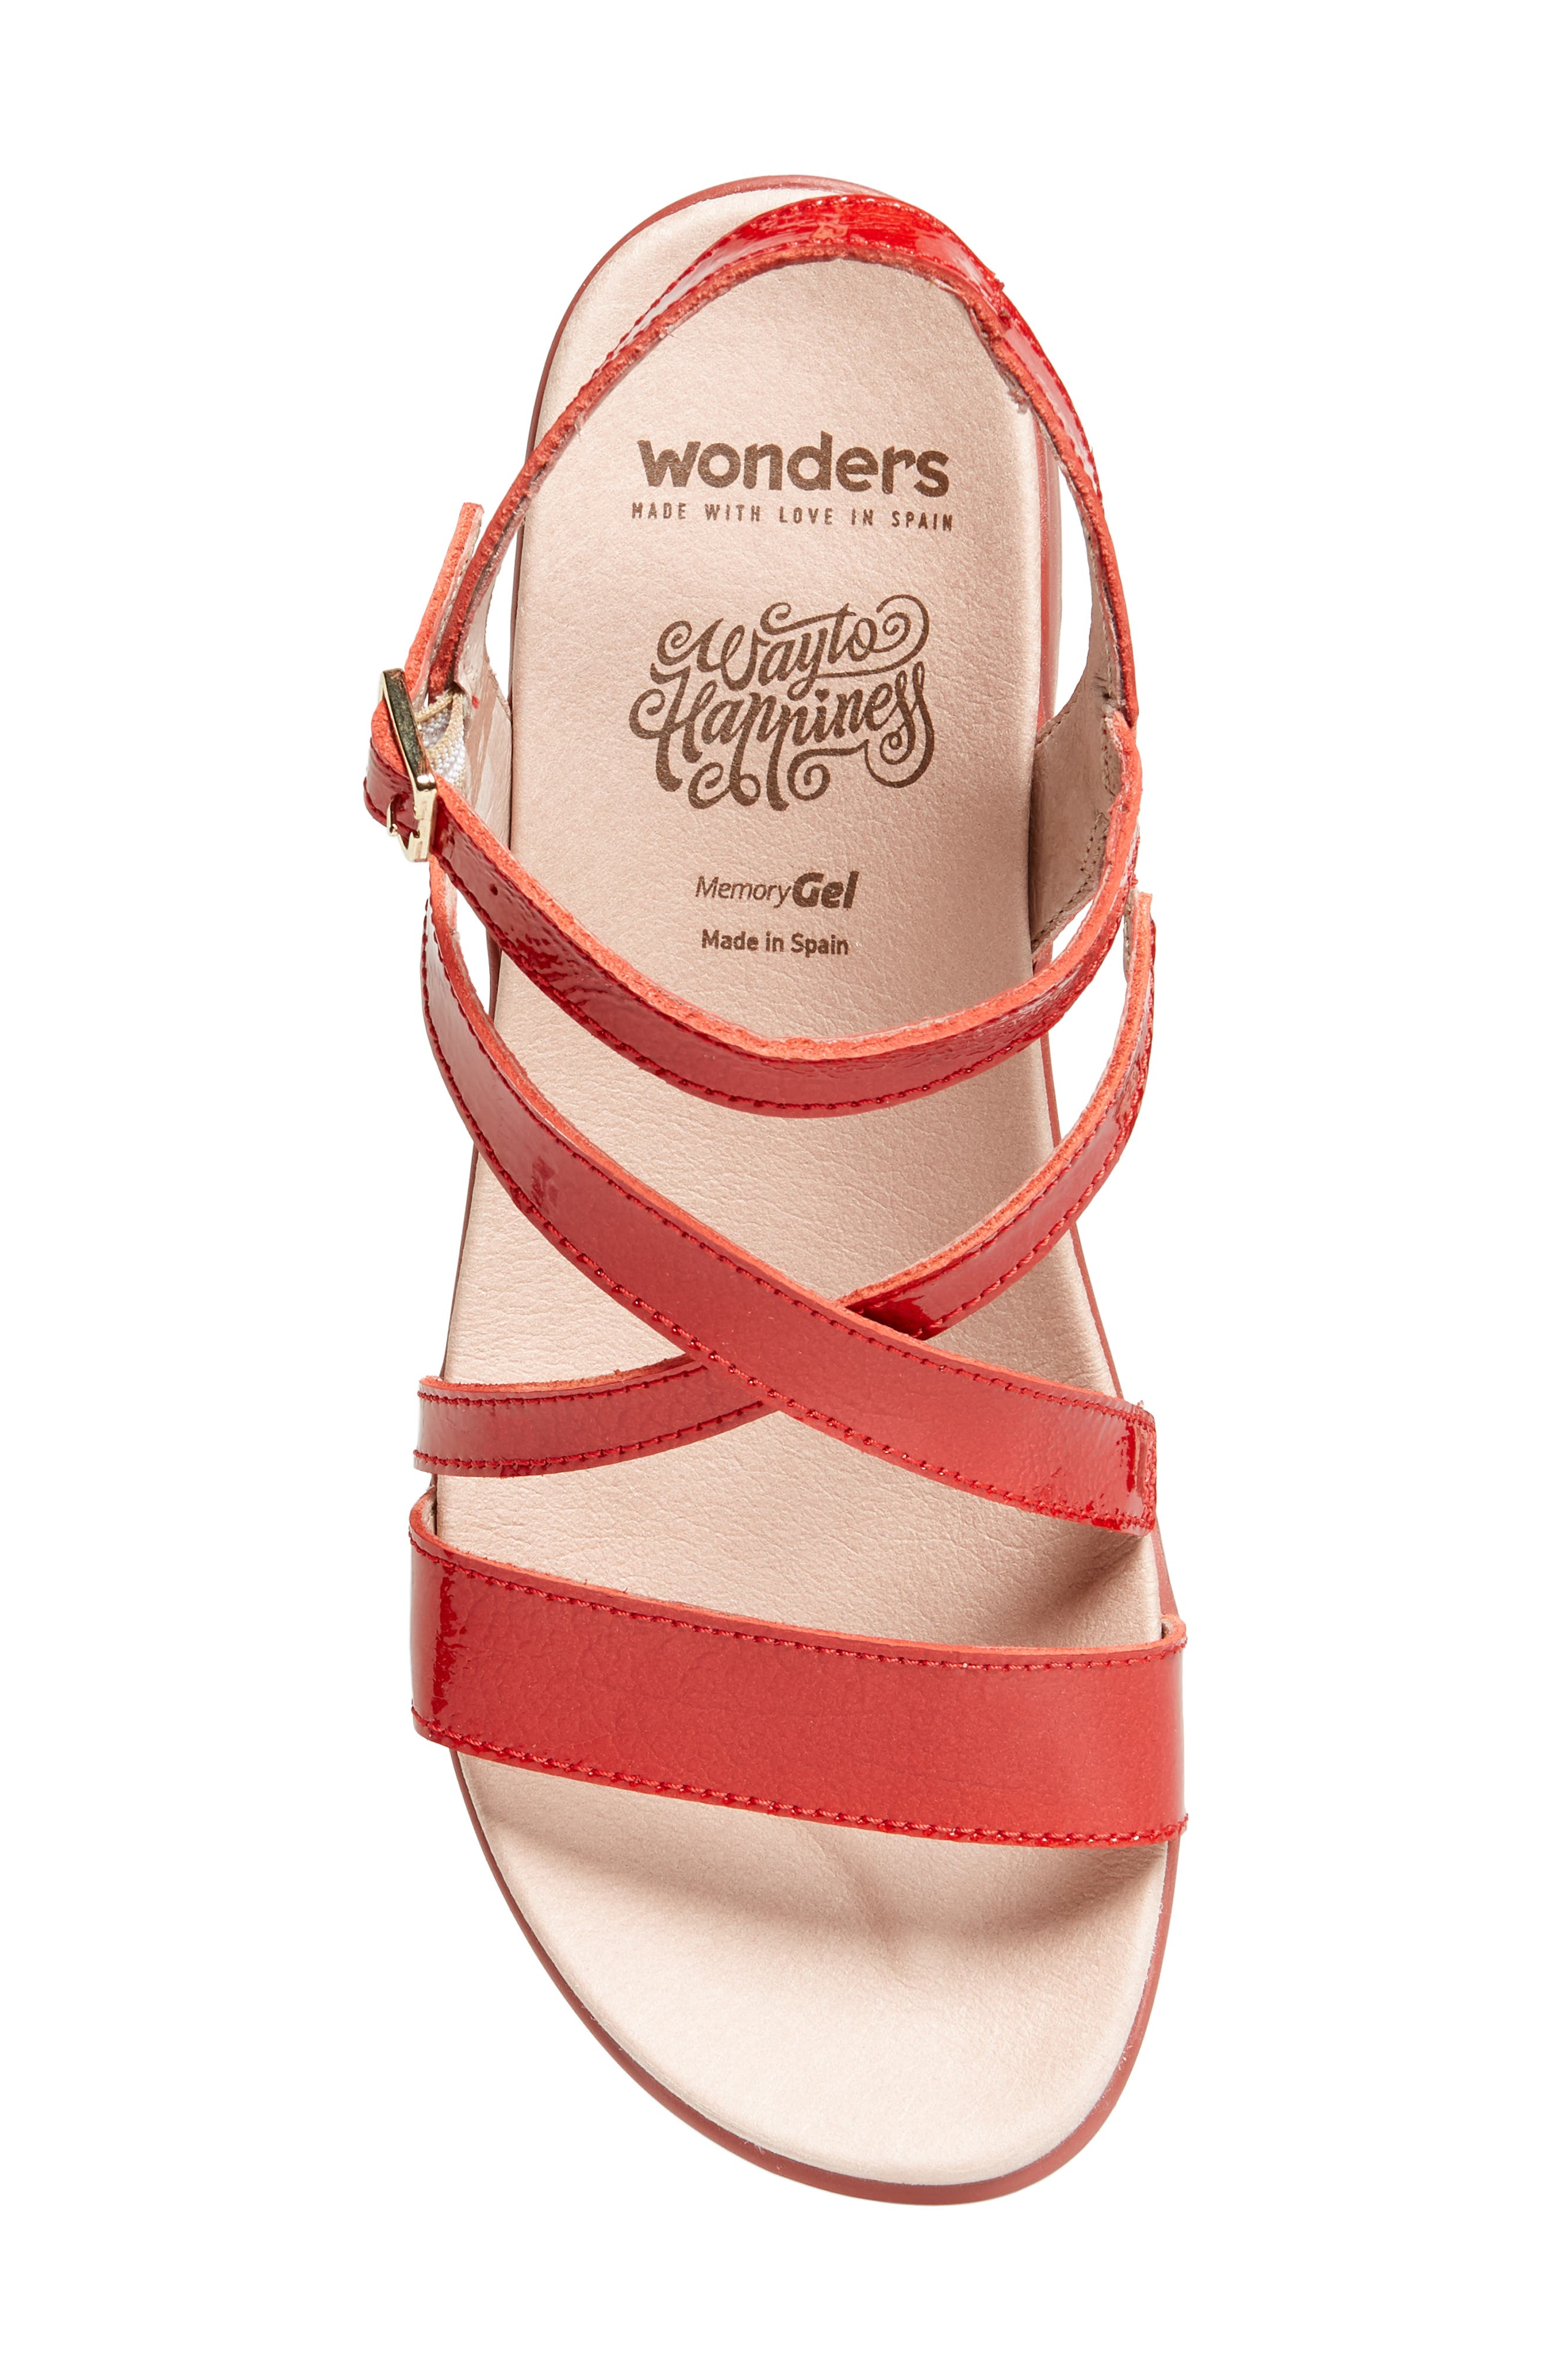 Wedge Sandal,                             Alternate thumbnail 5, color,                             Red Patent Leather